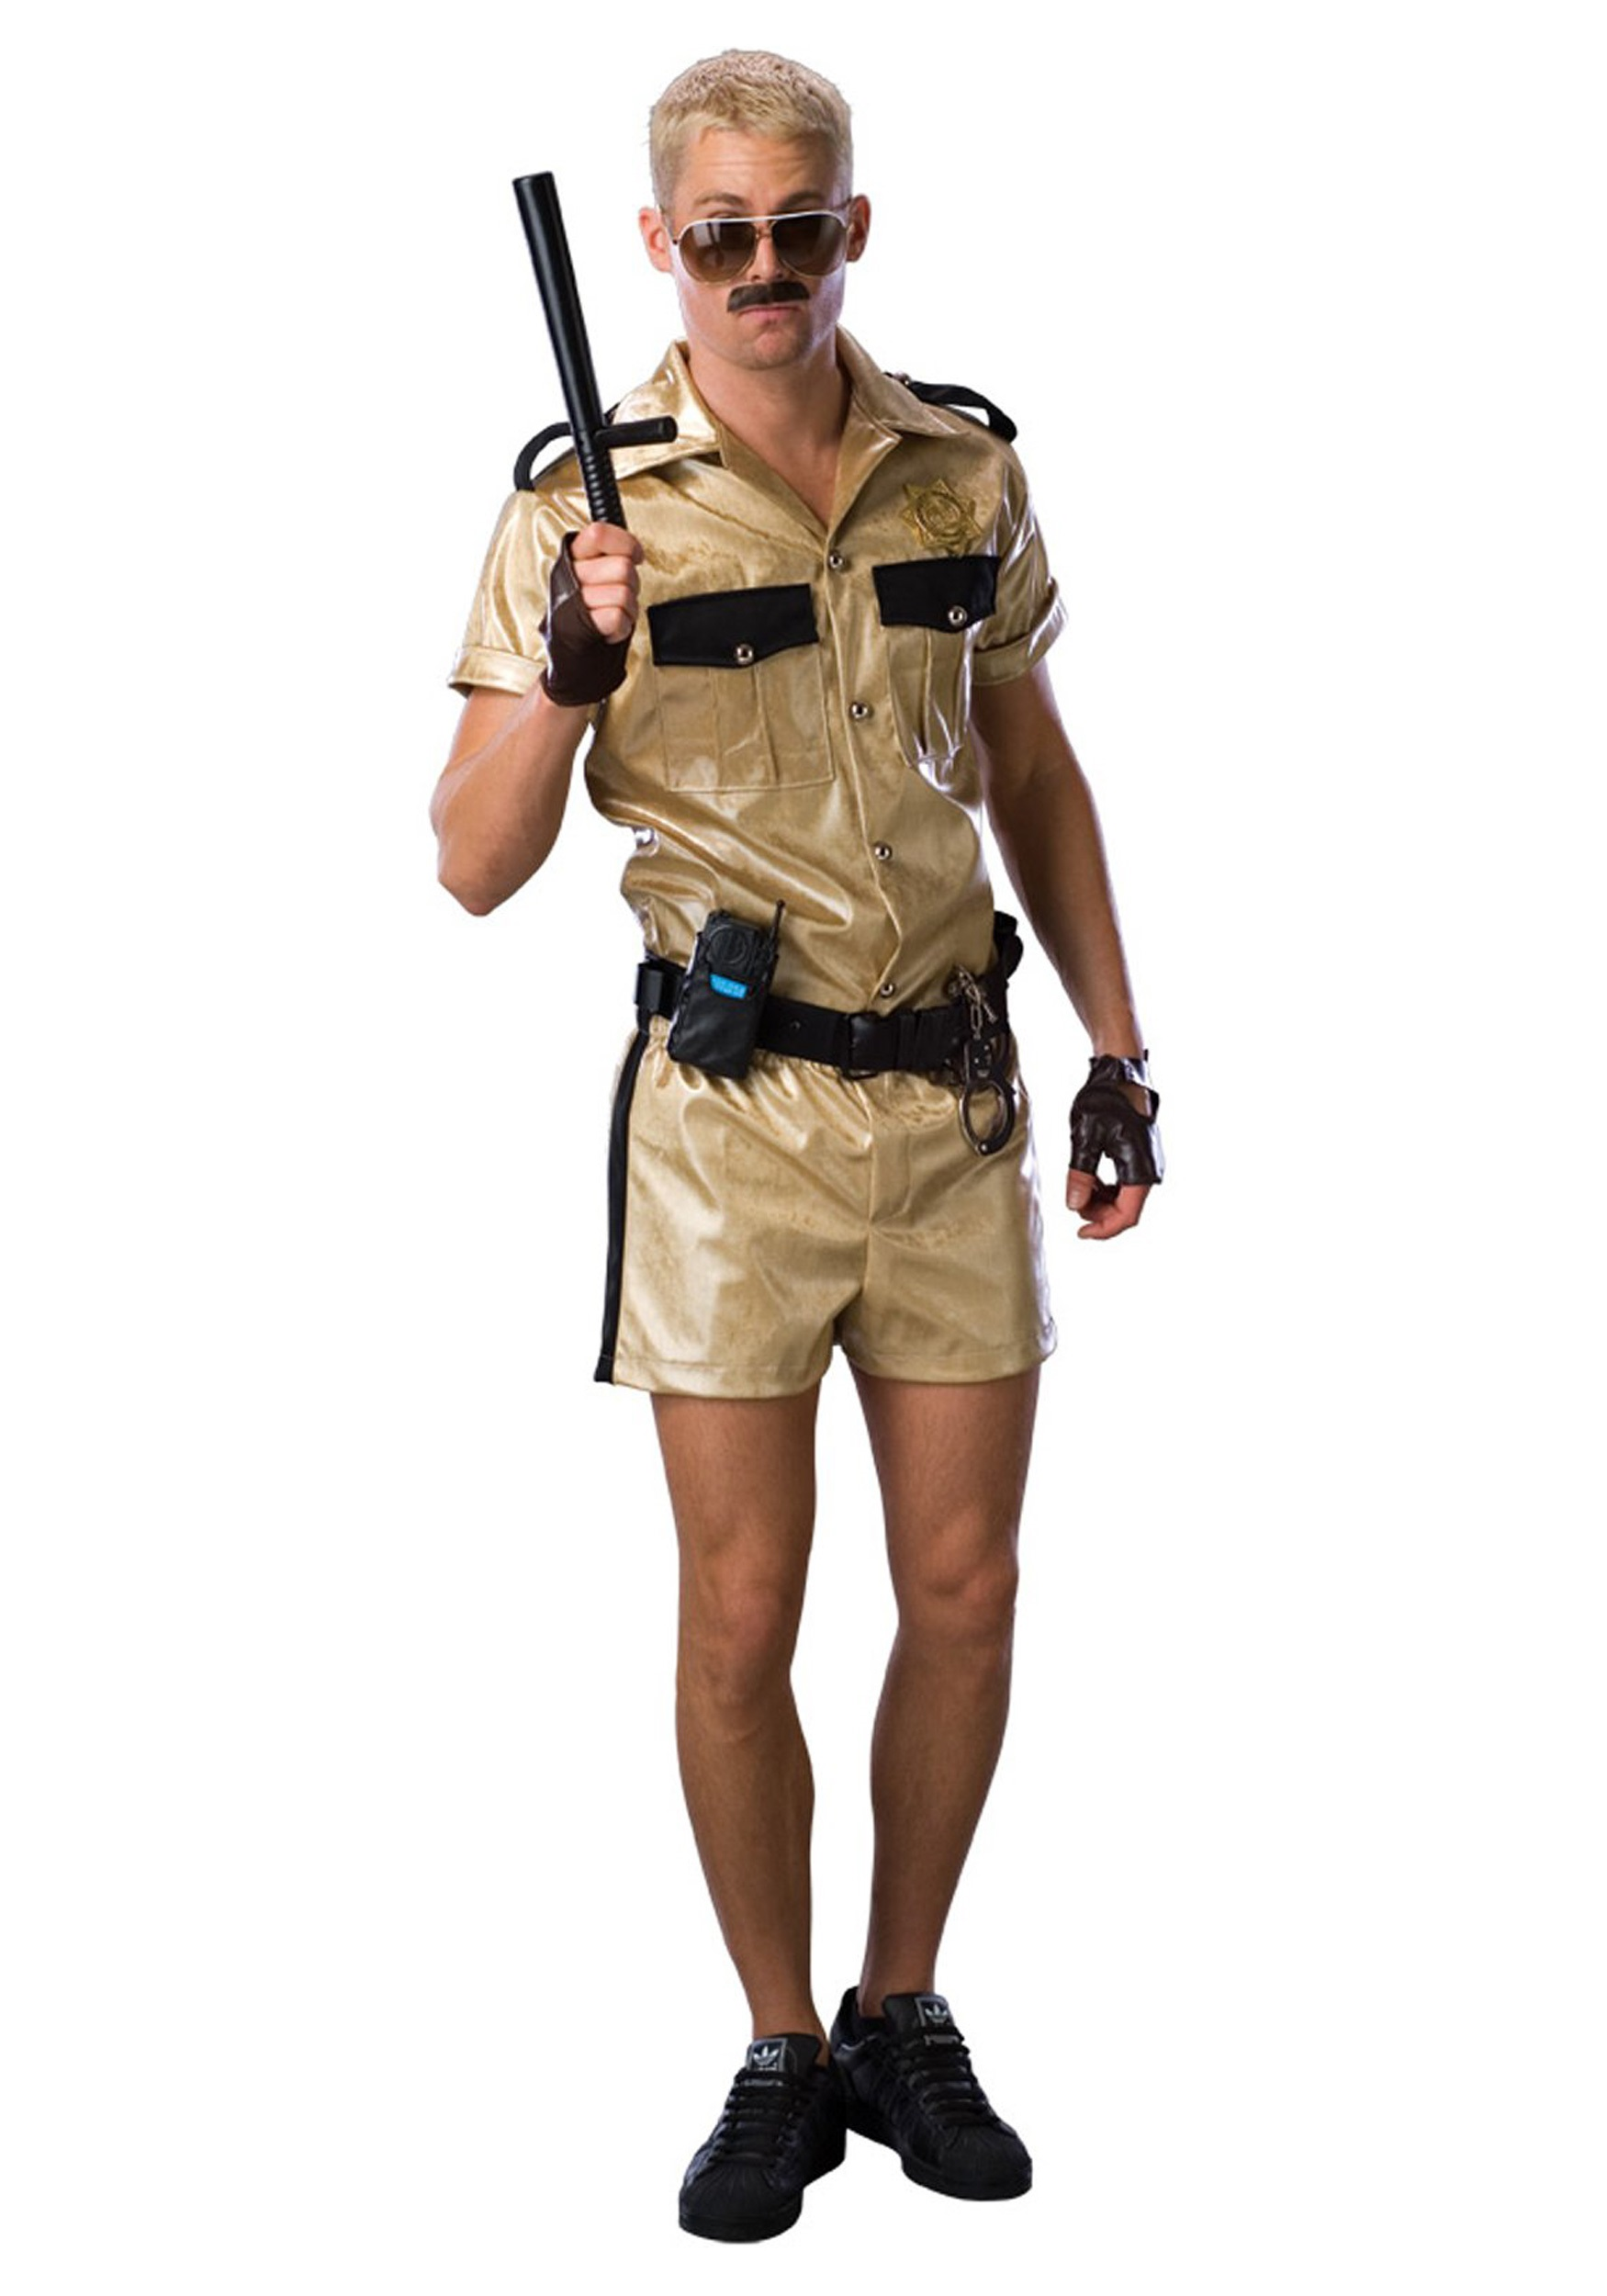 Hilarious Guy Halloween Costumes Funny Costumes 7 Sc 1 St The